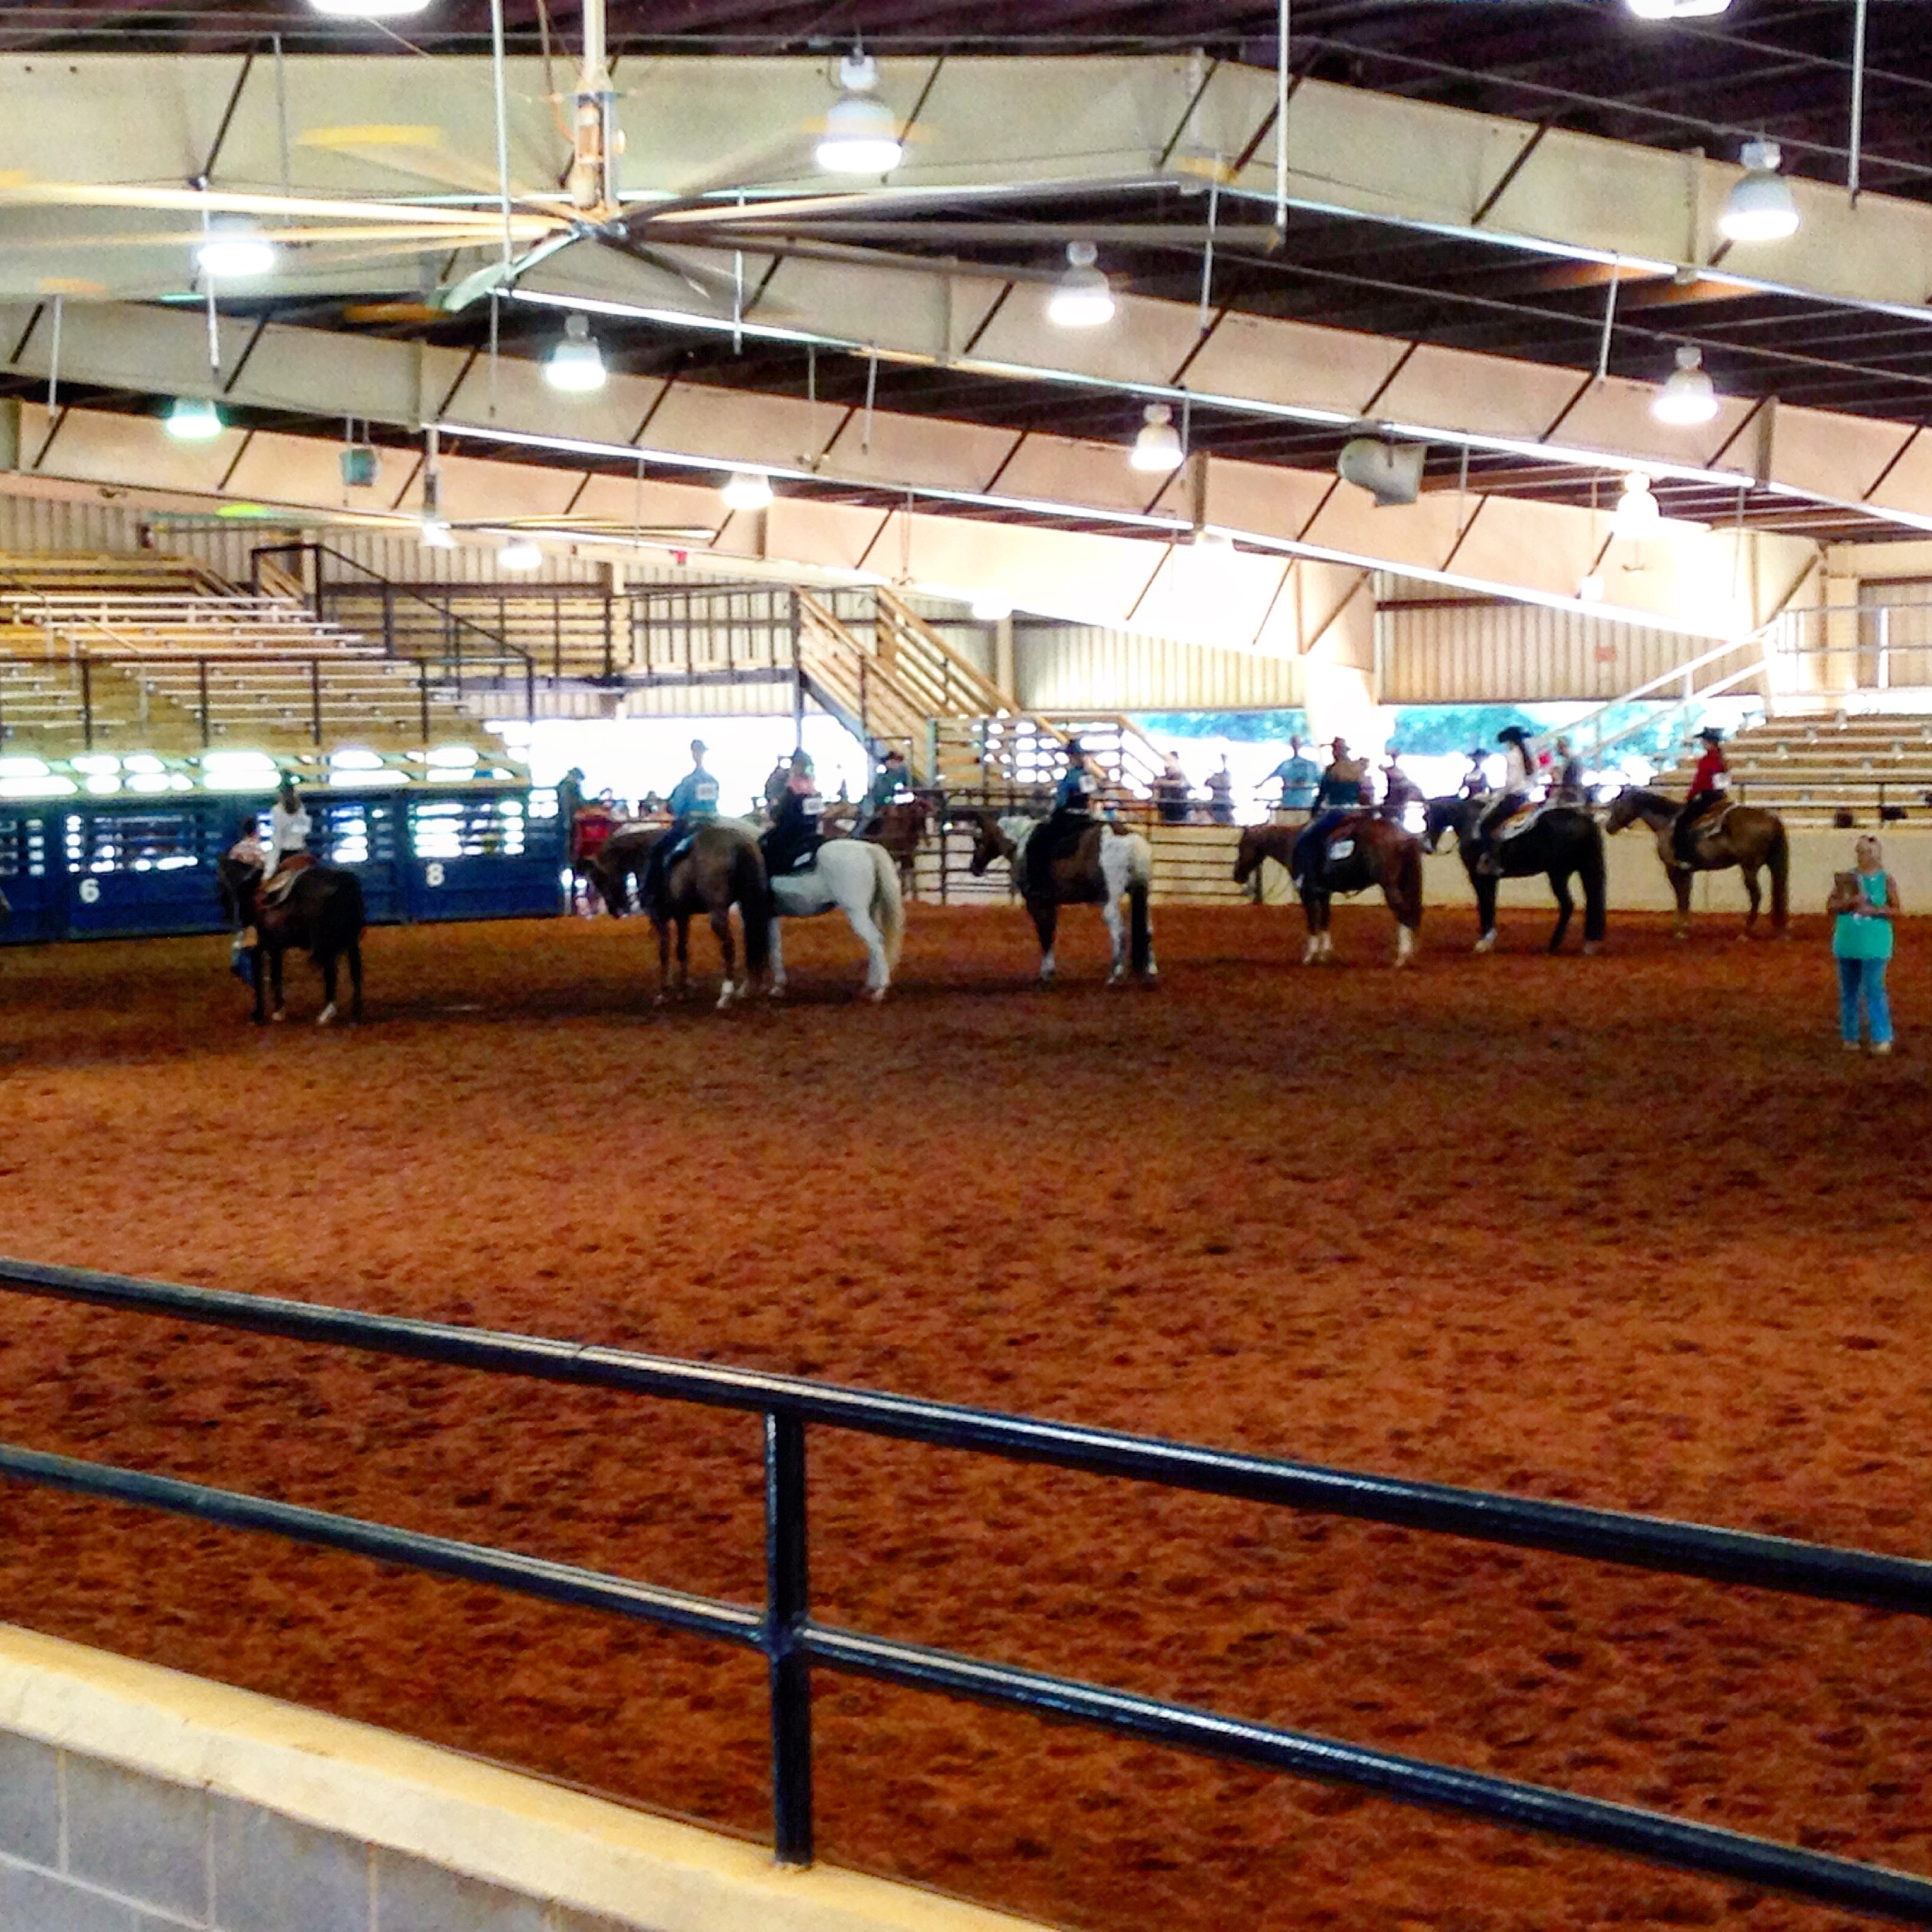 Dgaha June 2015 Open All Breed Horse Show Cv Equestrian Horseback Riding Lessons Training Horse Stables 850 527 6575